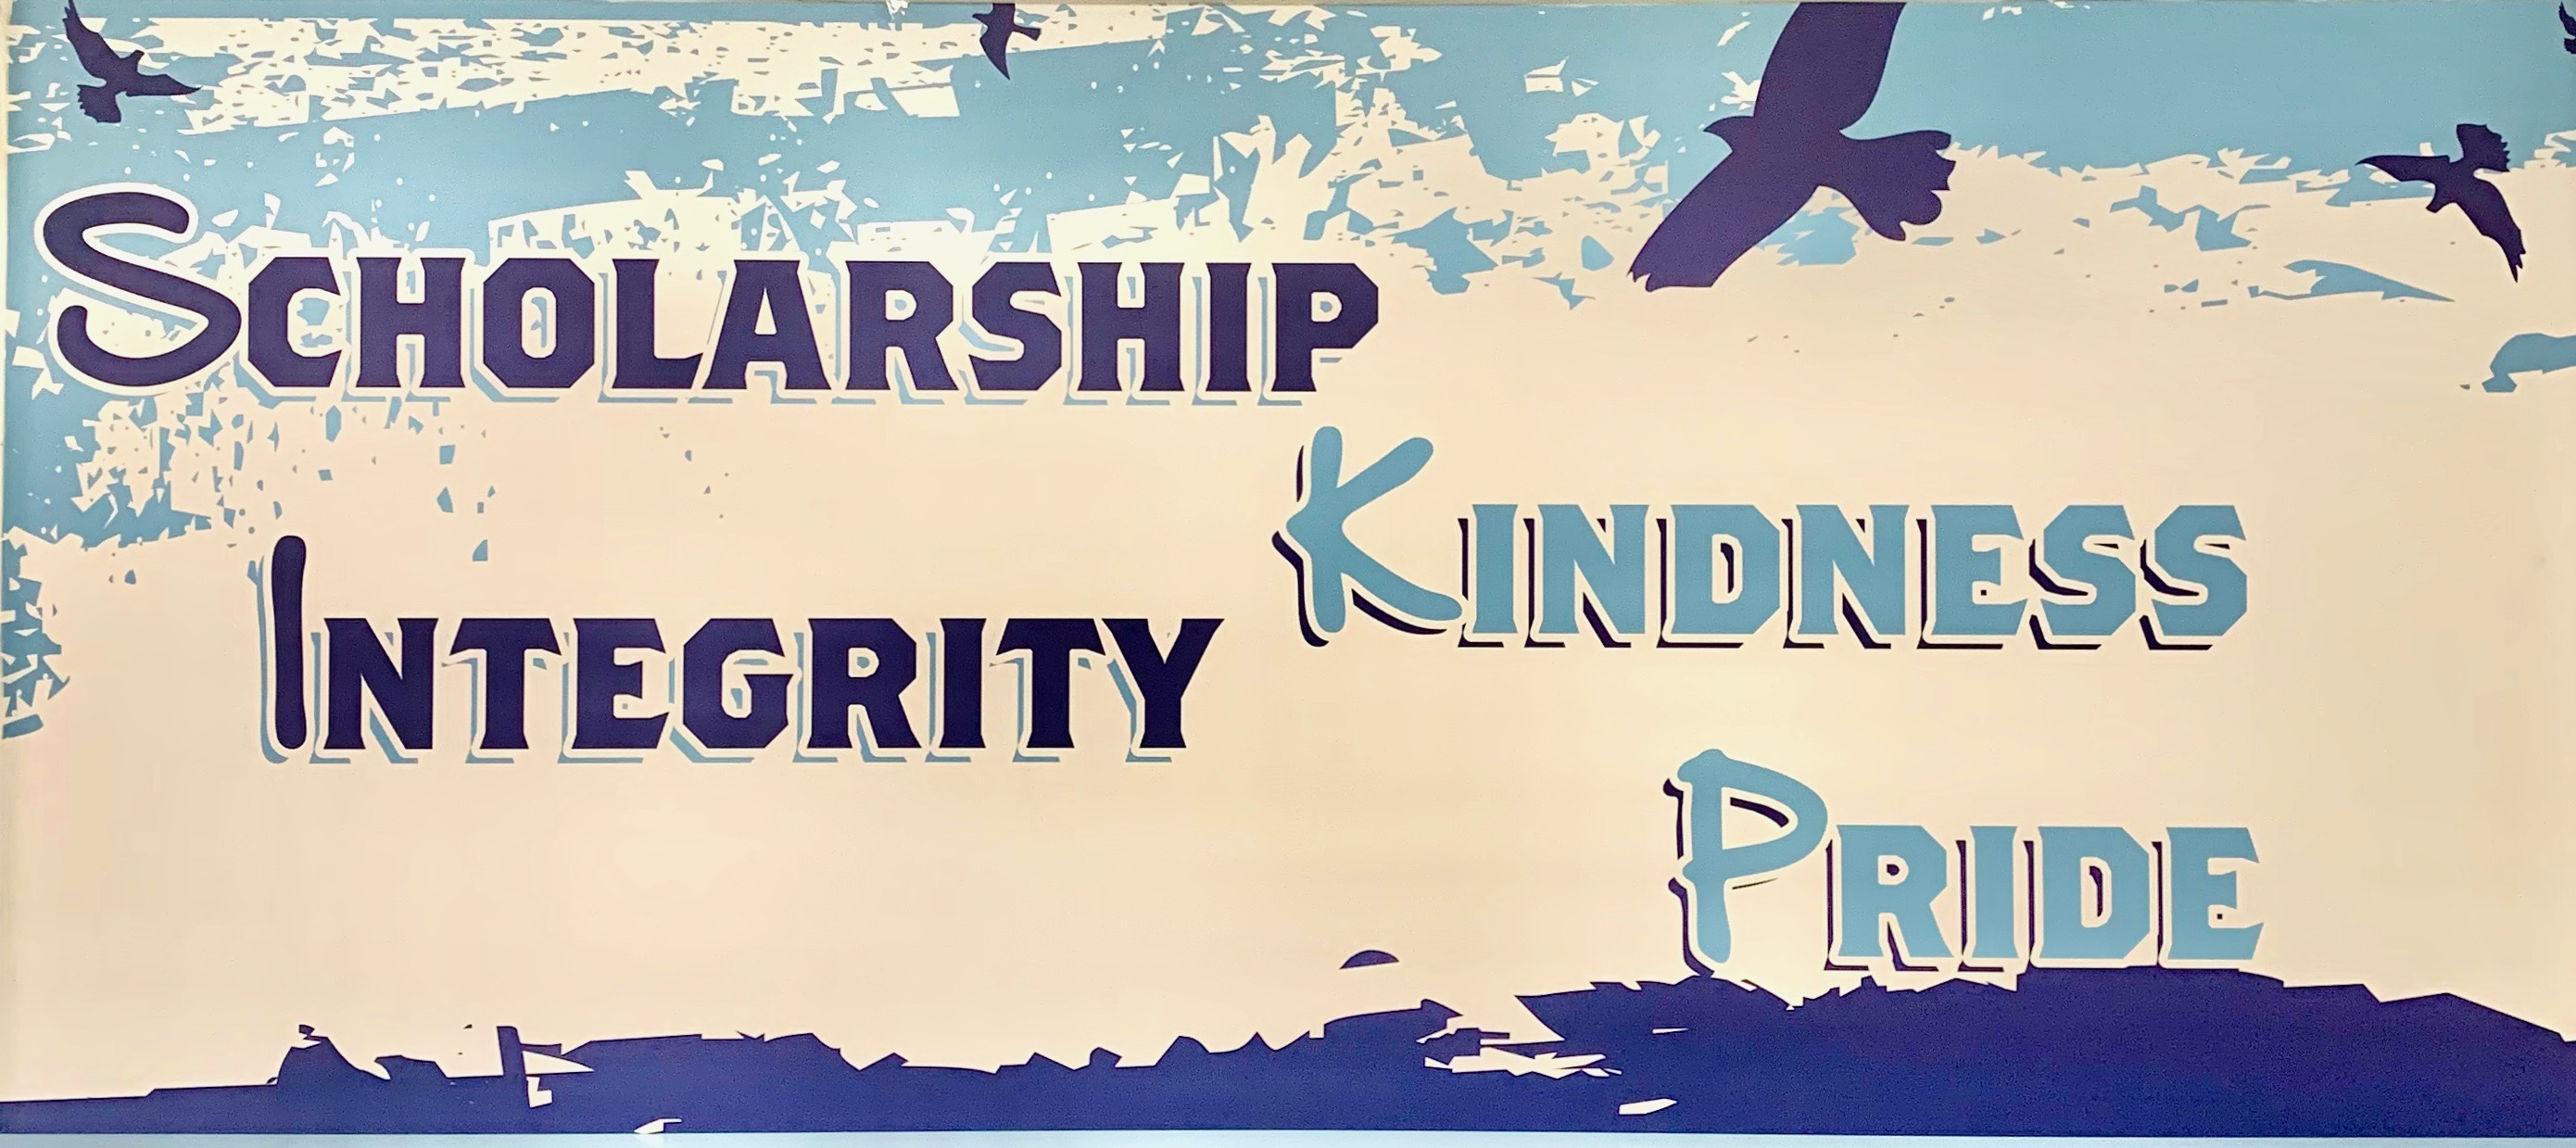 Scholarships, Integrity, Kindess